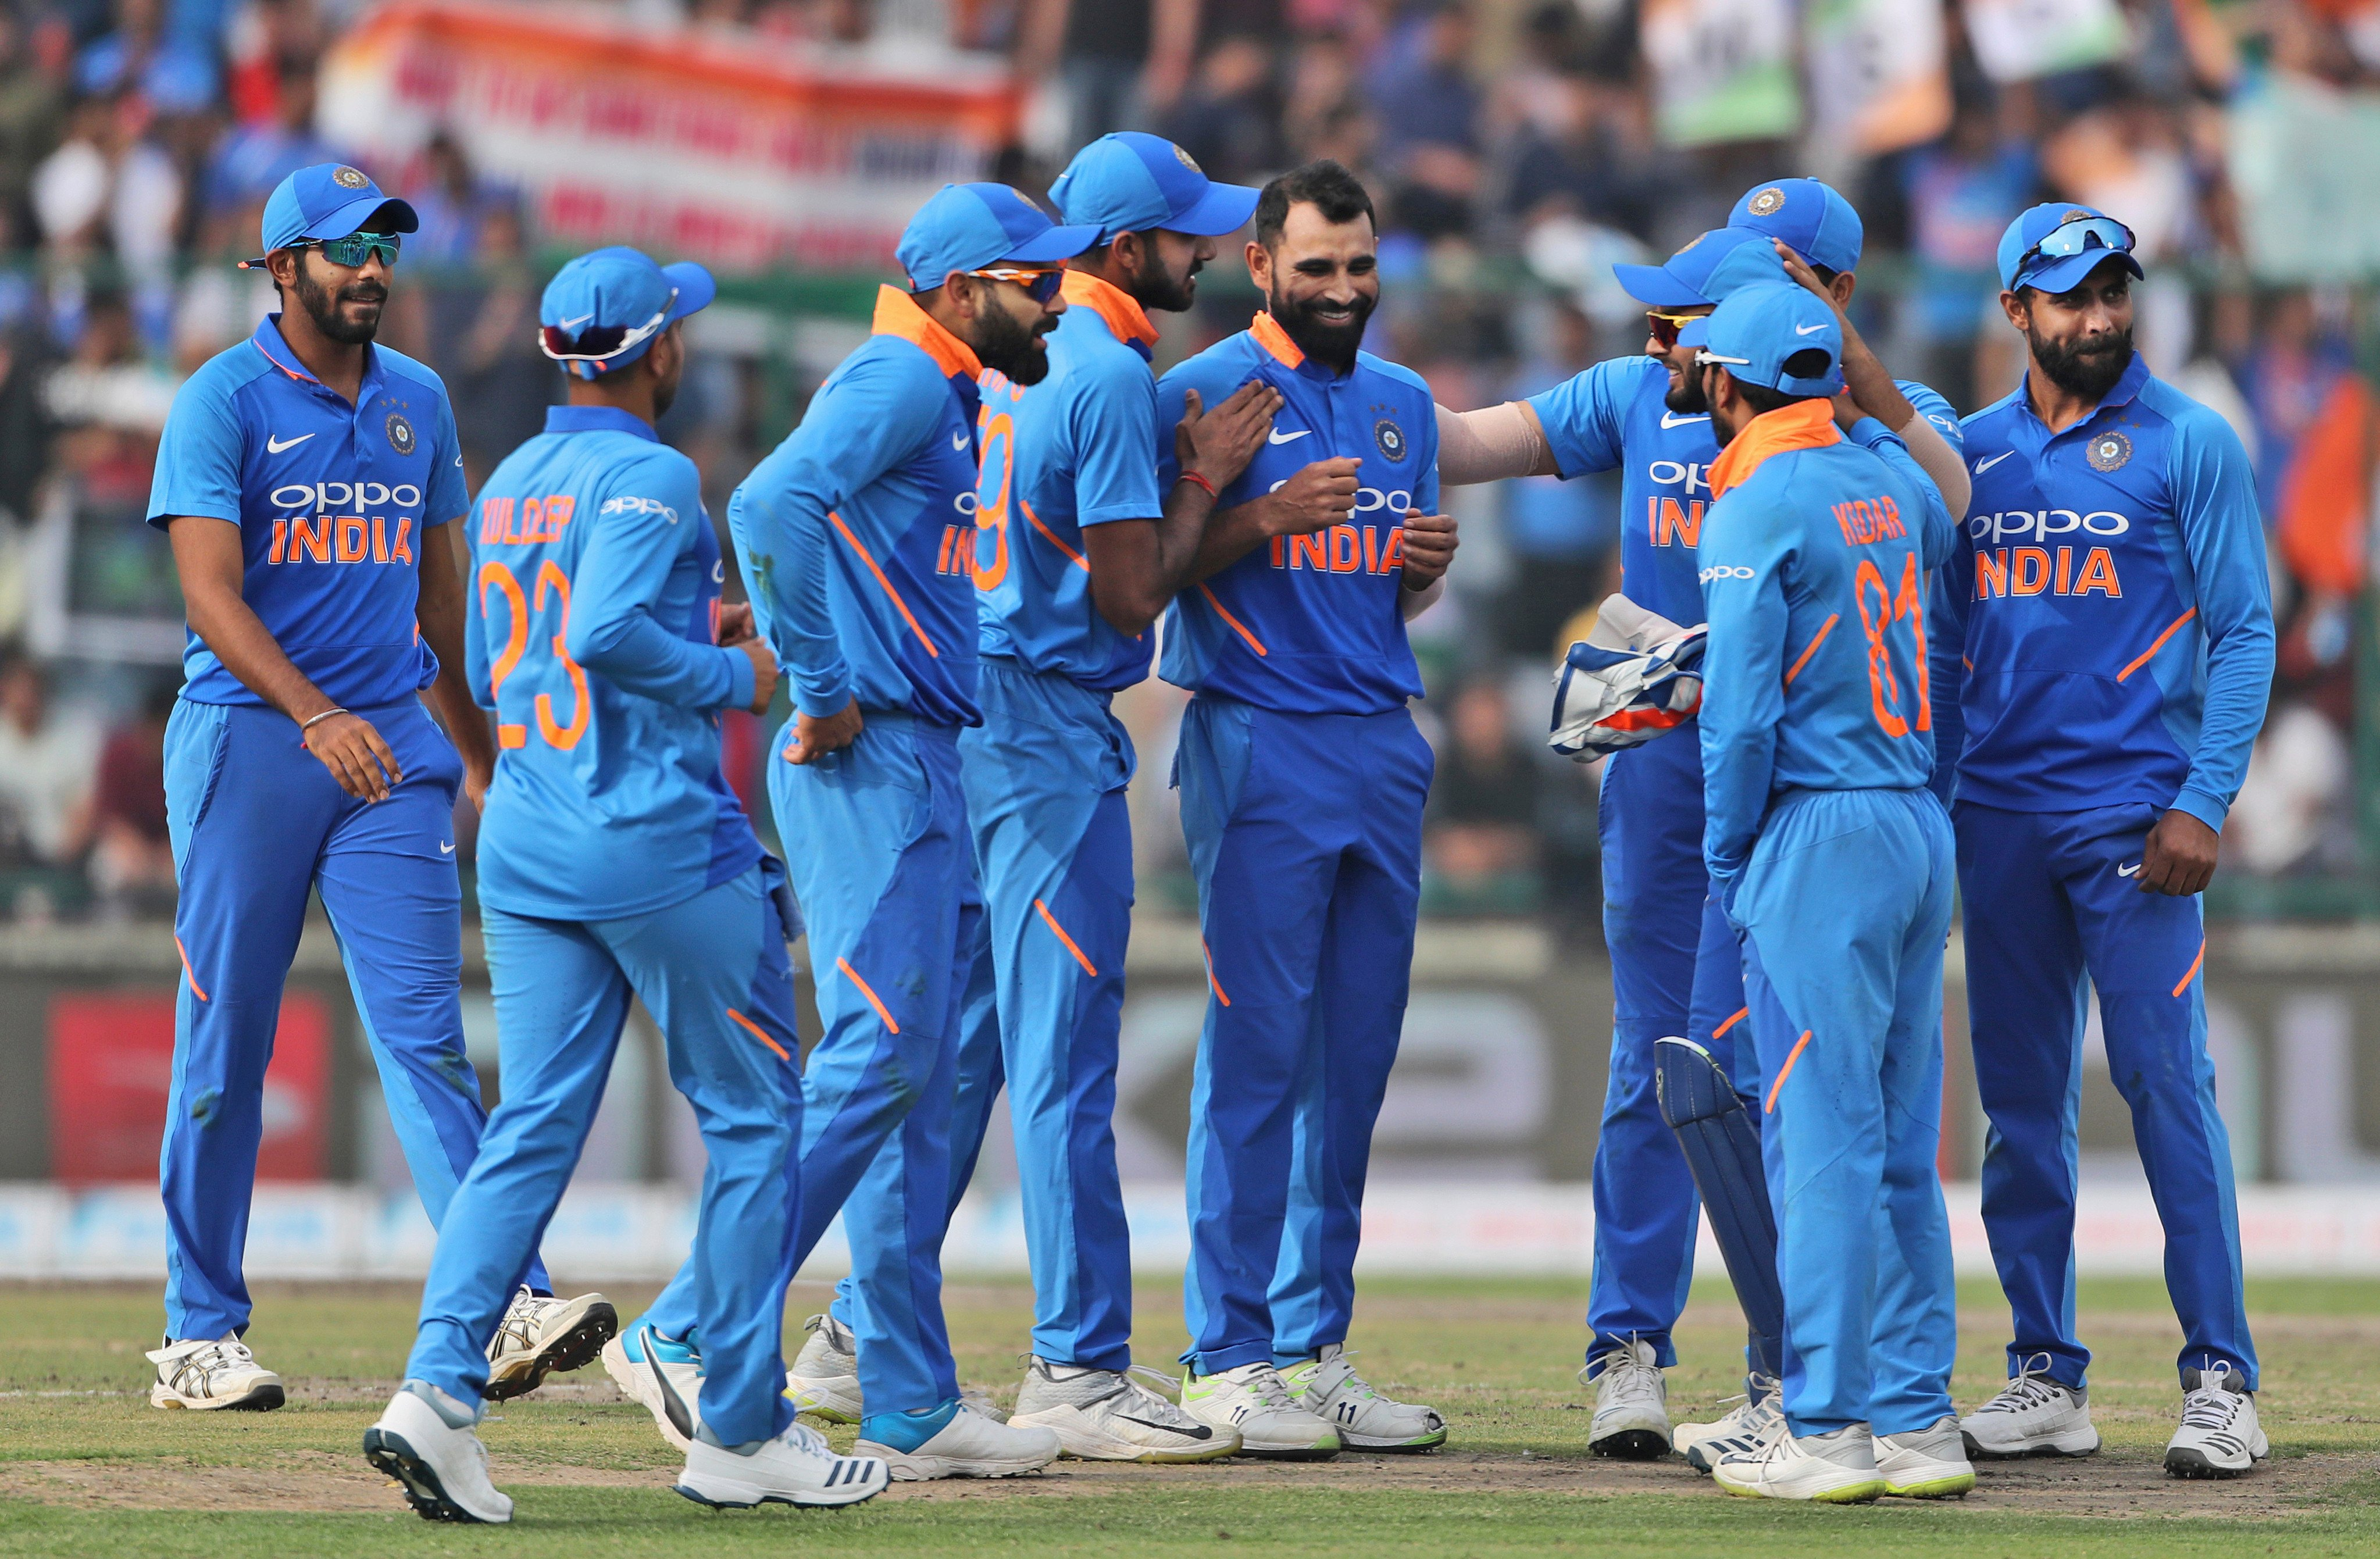 Cricket World Cup 2019 tickets: When are they back on sale, what are the prices and full schedule?